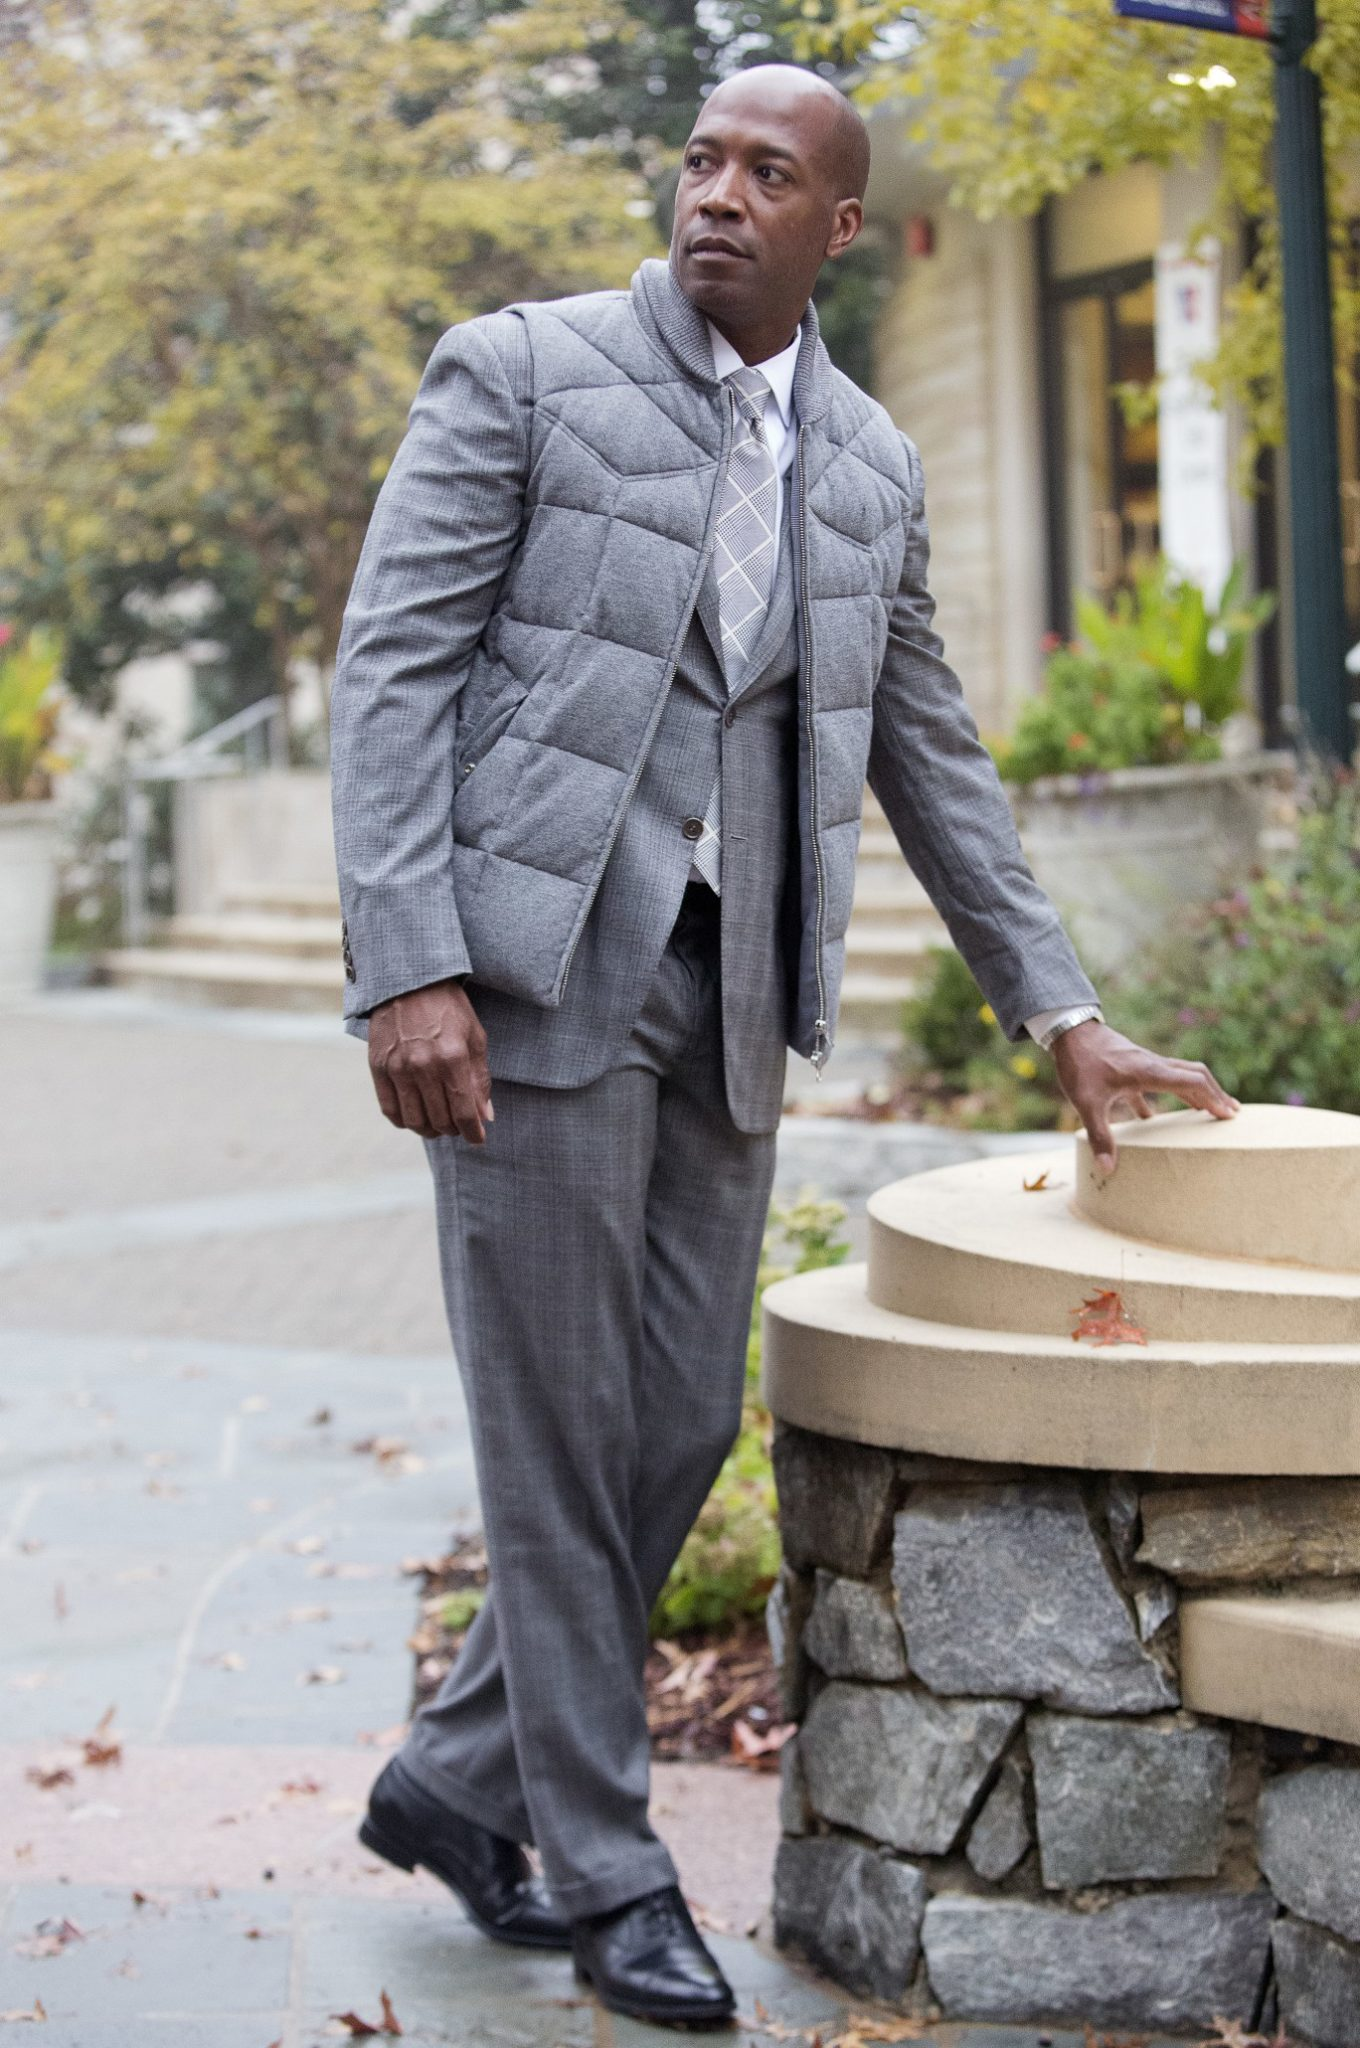 50bf8a76c61 One of my go to looks is their dark gray Prince of Wales Sienna suit. The  classic grey suit with its subtle pattern makes it an excellent choice when  ...